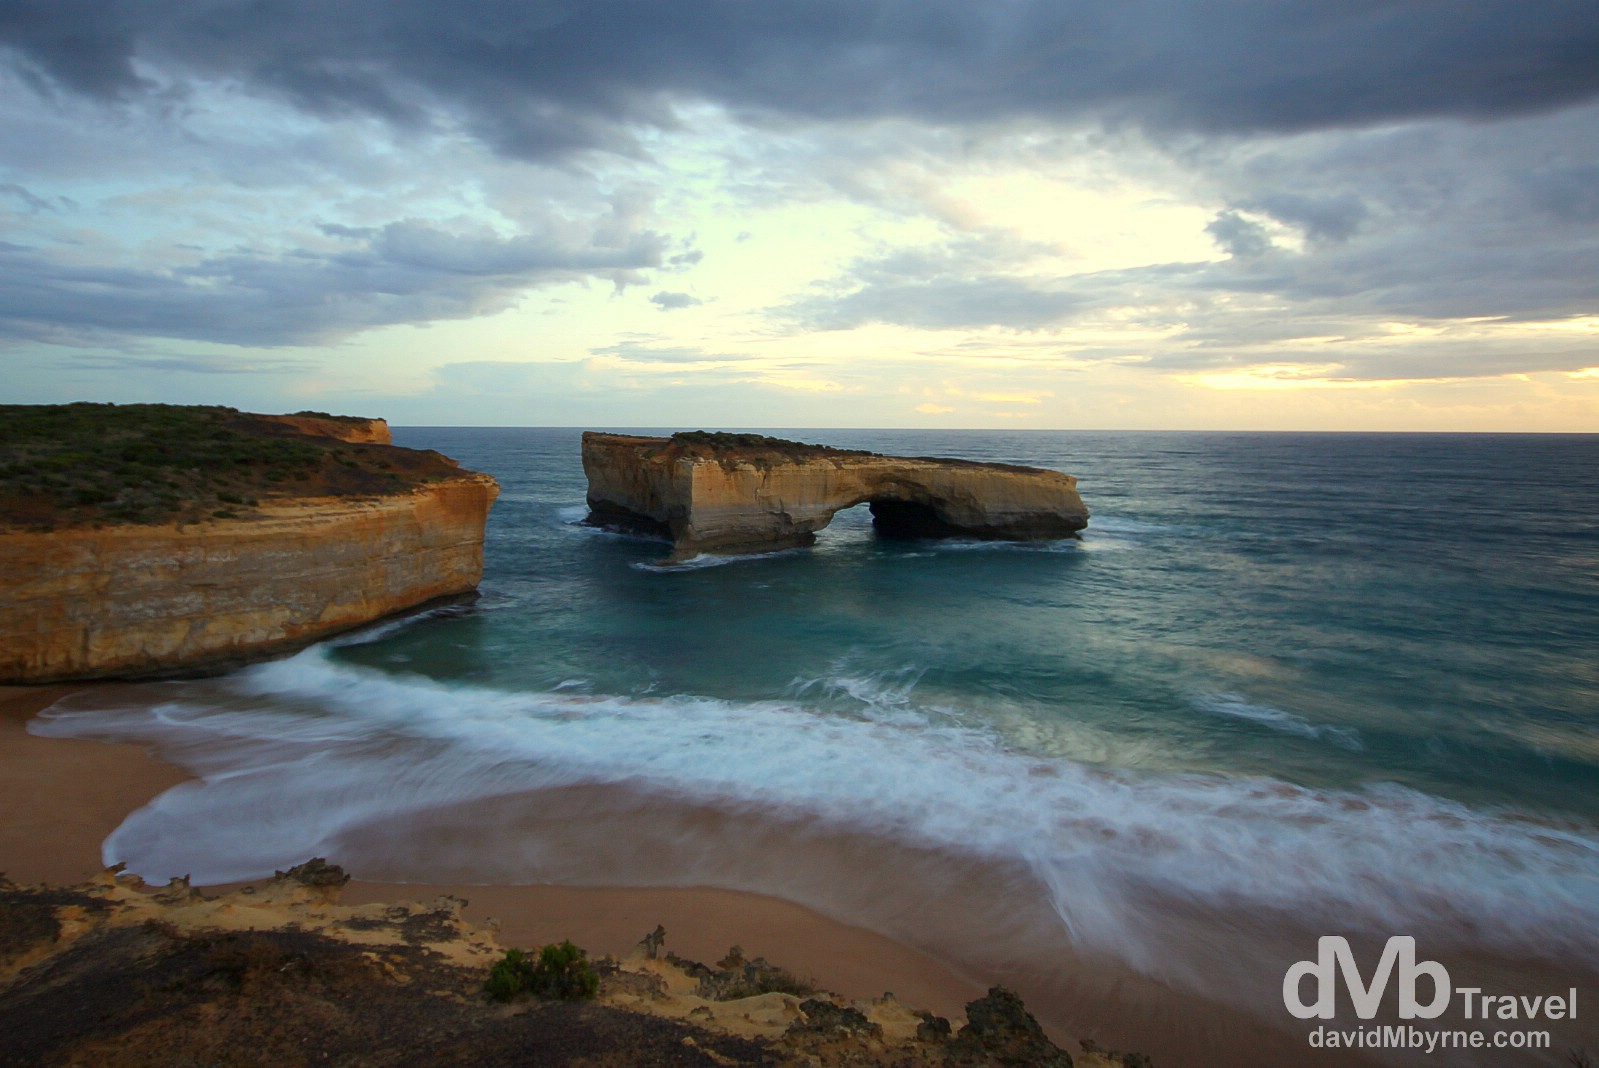 London Arch, Port Campbell National Park, the Great Ocean Road, Victoria, Australia. April 22nd 2012.